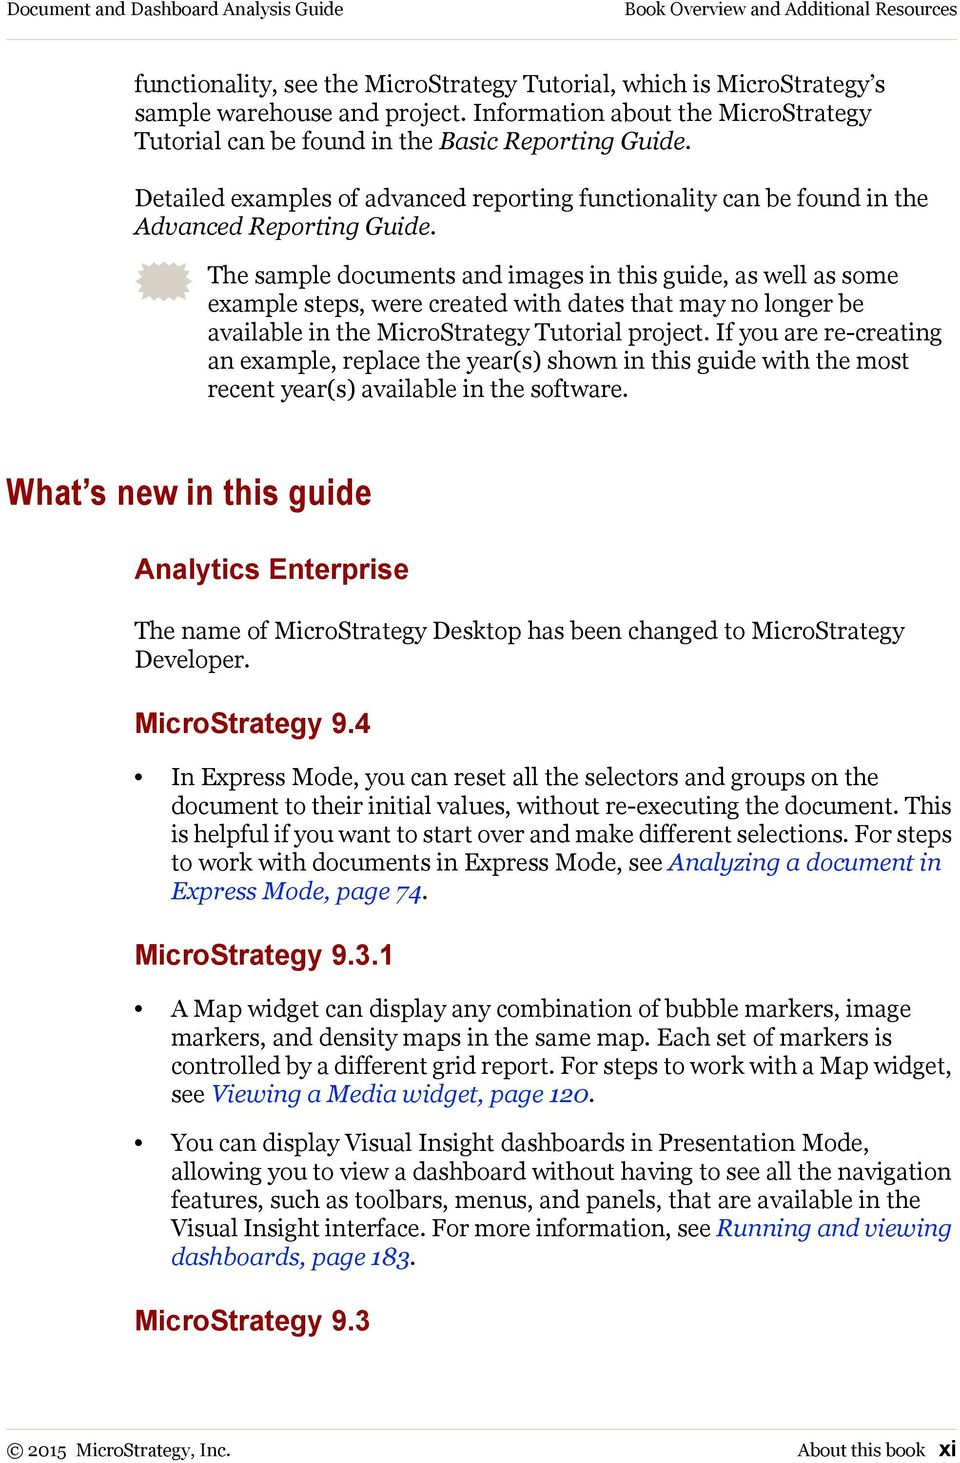 Document And Dashboard Analysis Guide Pdf